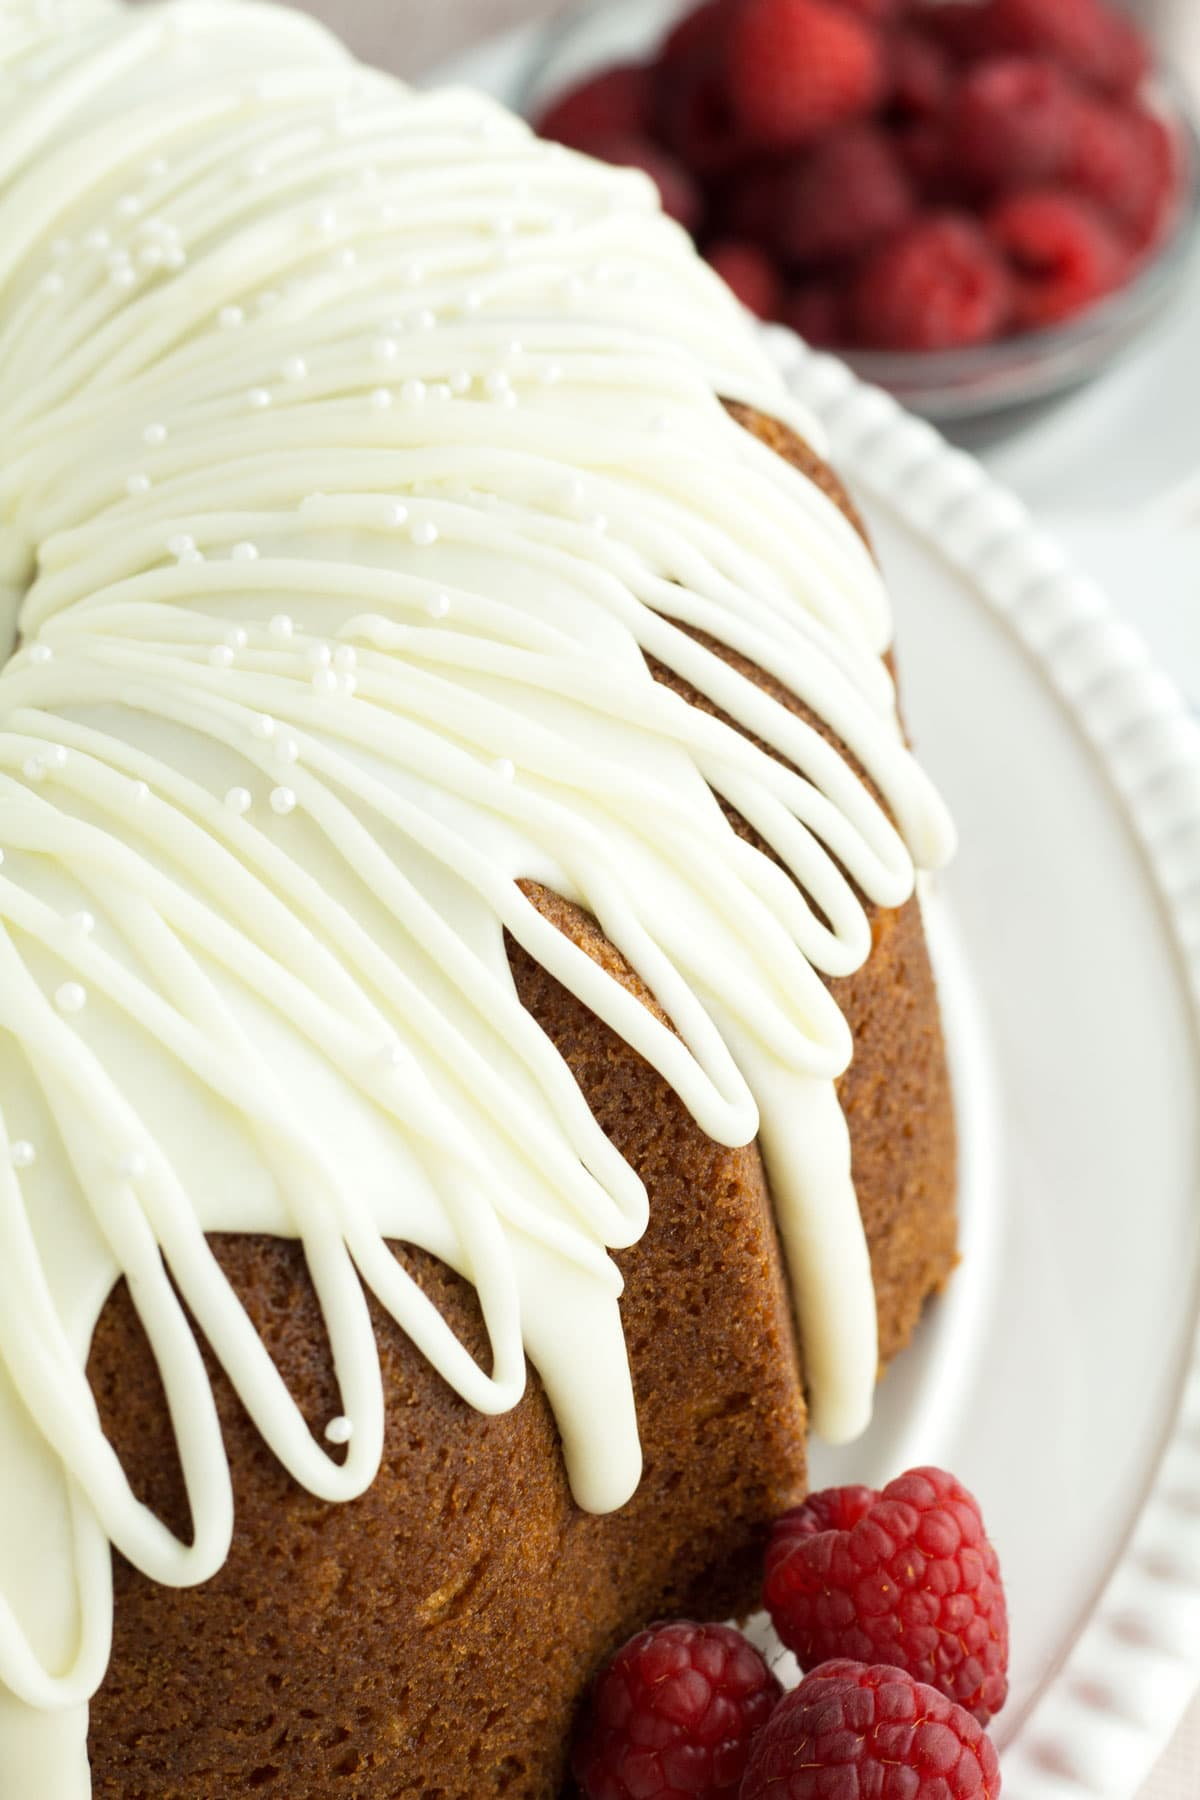 Beautiful white chocolate frosting with edible pearls decorating a bundt cake.